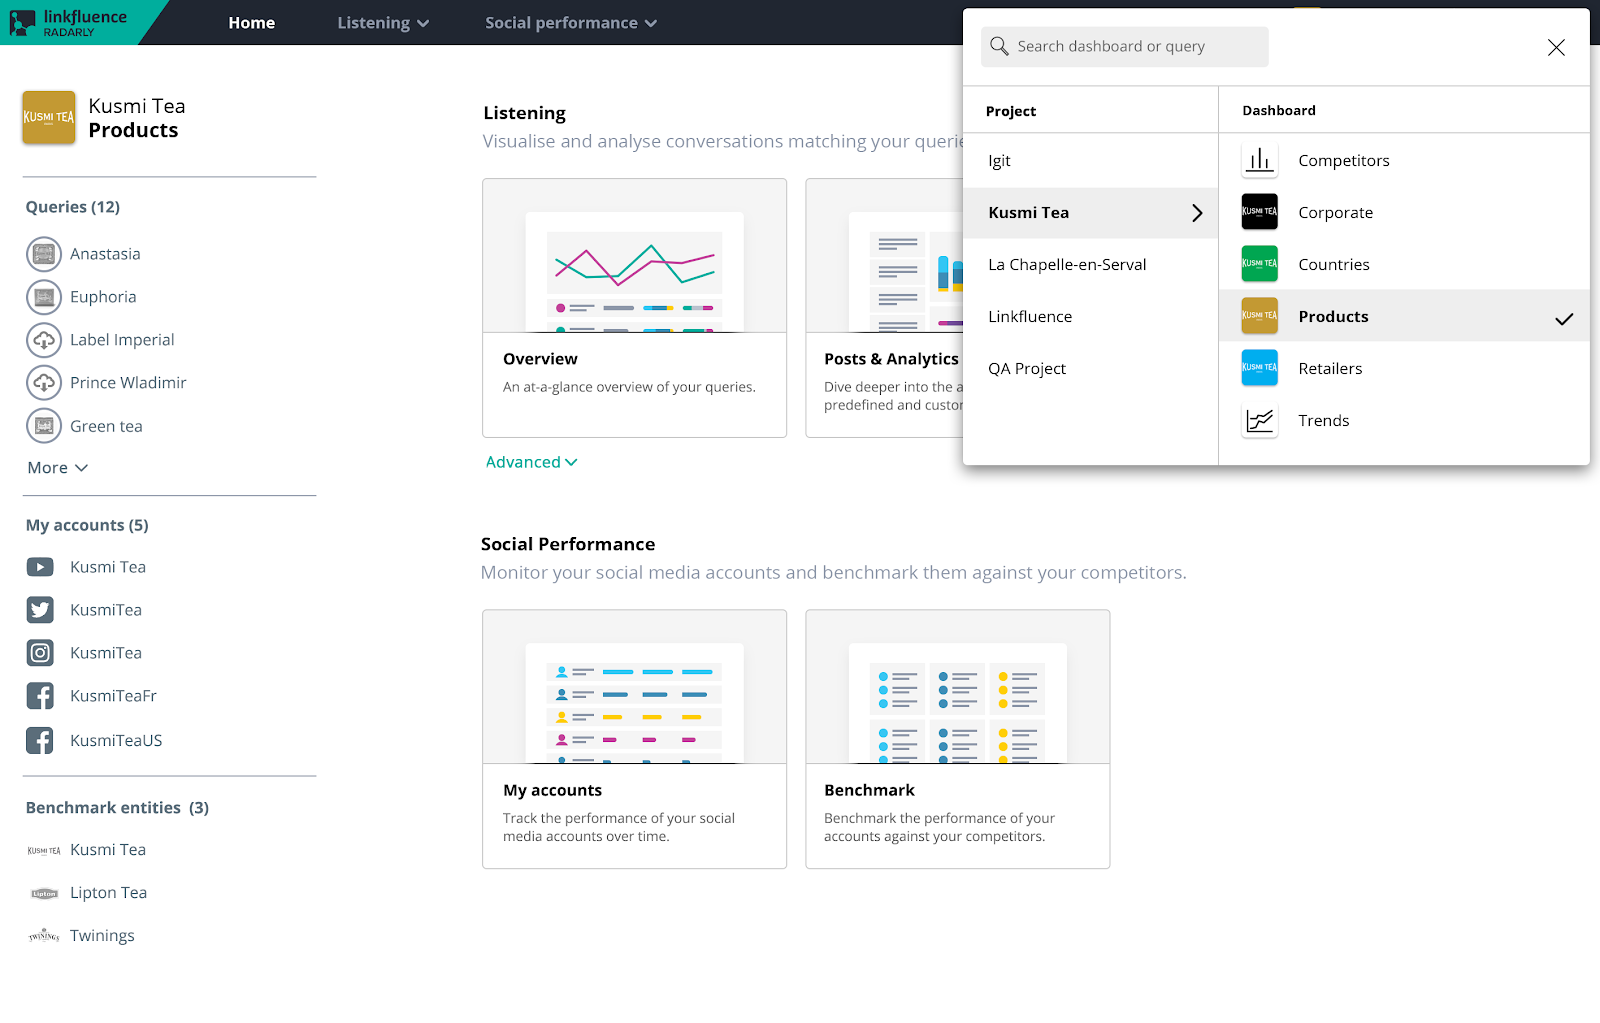 Radarly UX redesign new drop-down panel to switch between projects and dashboards